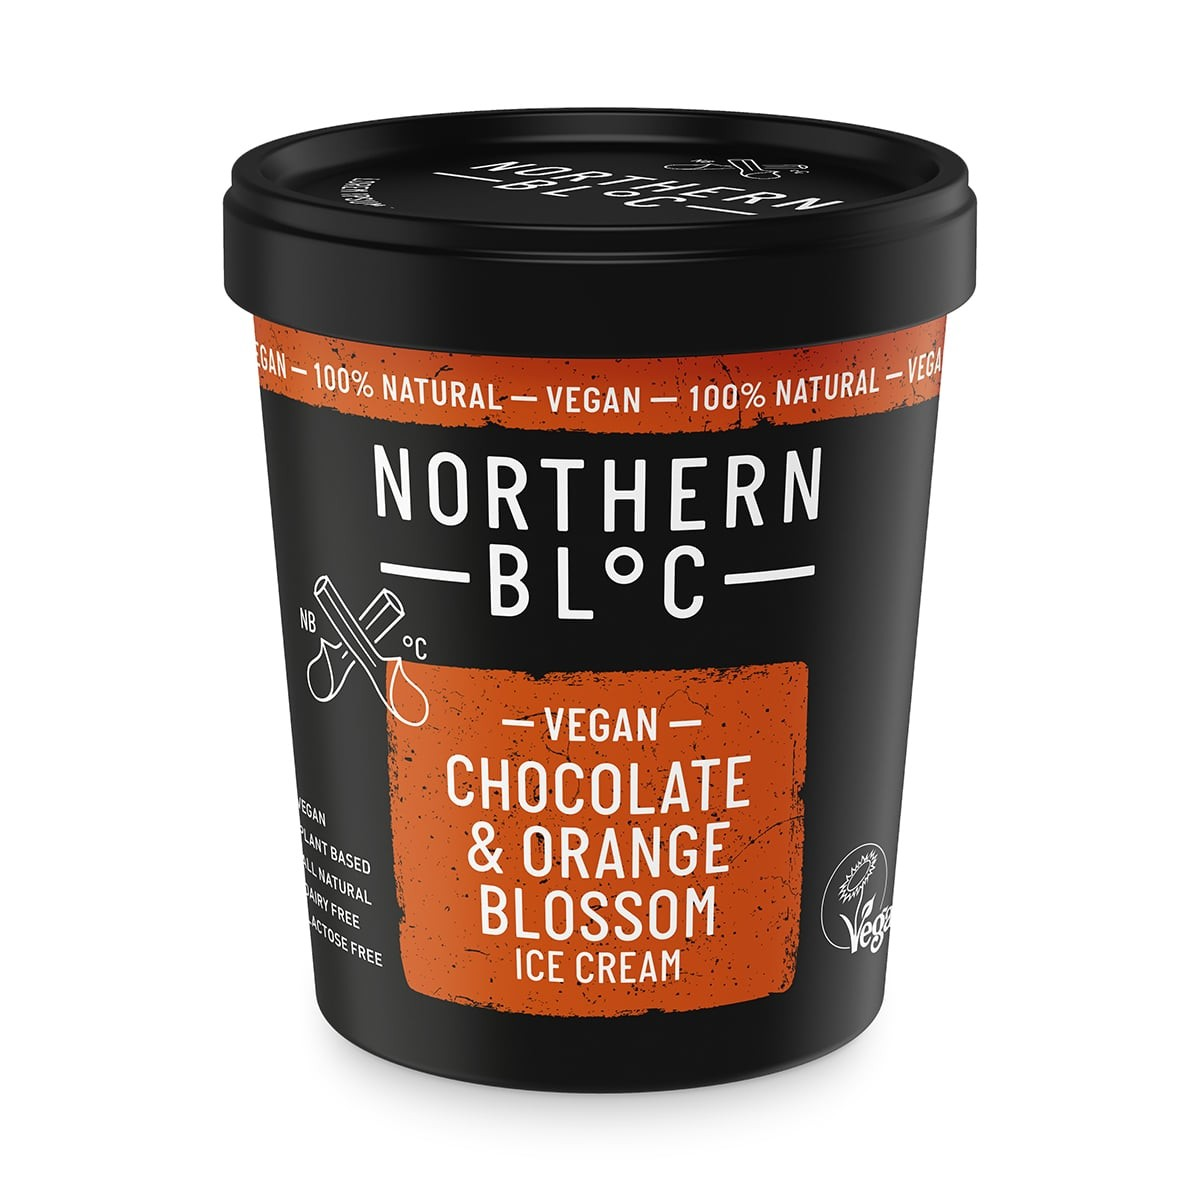 Northern Bloc Vegan Ice Cream